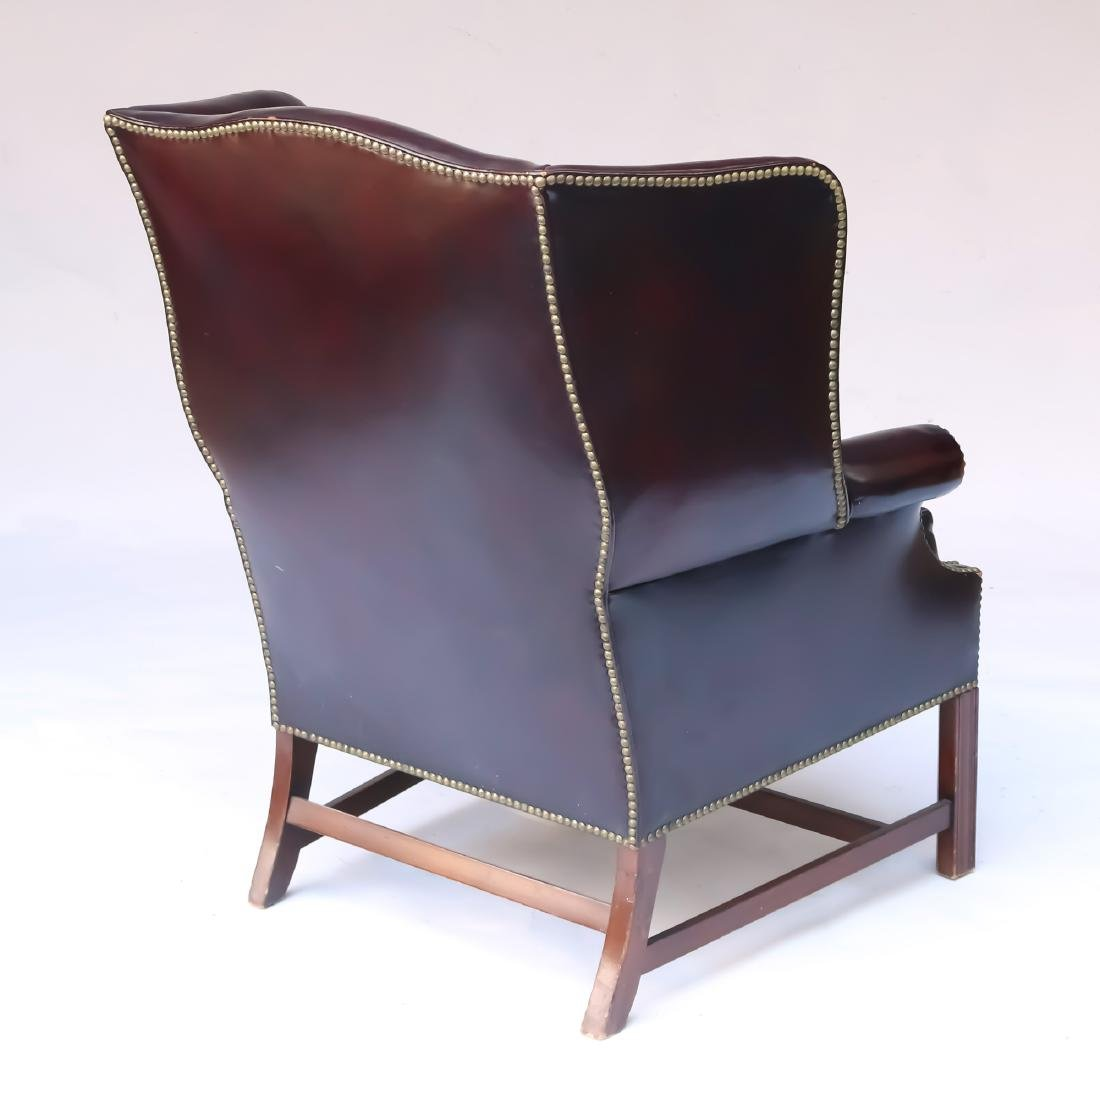 LEATHER CHIPPENDALE-STYLE WING CHAIR - 5